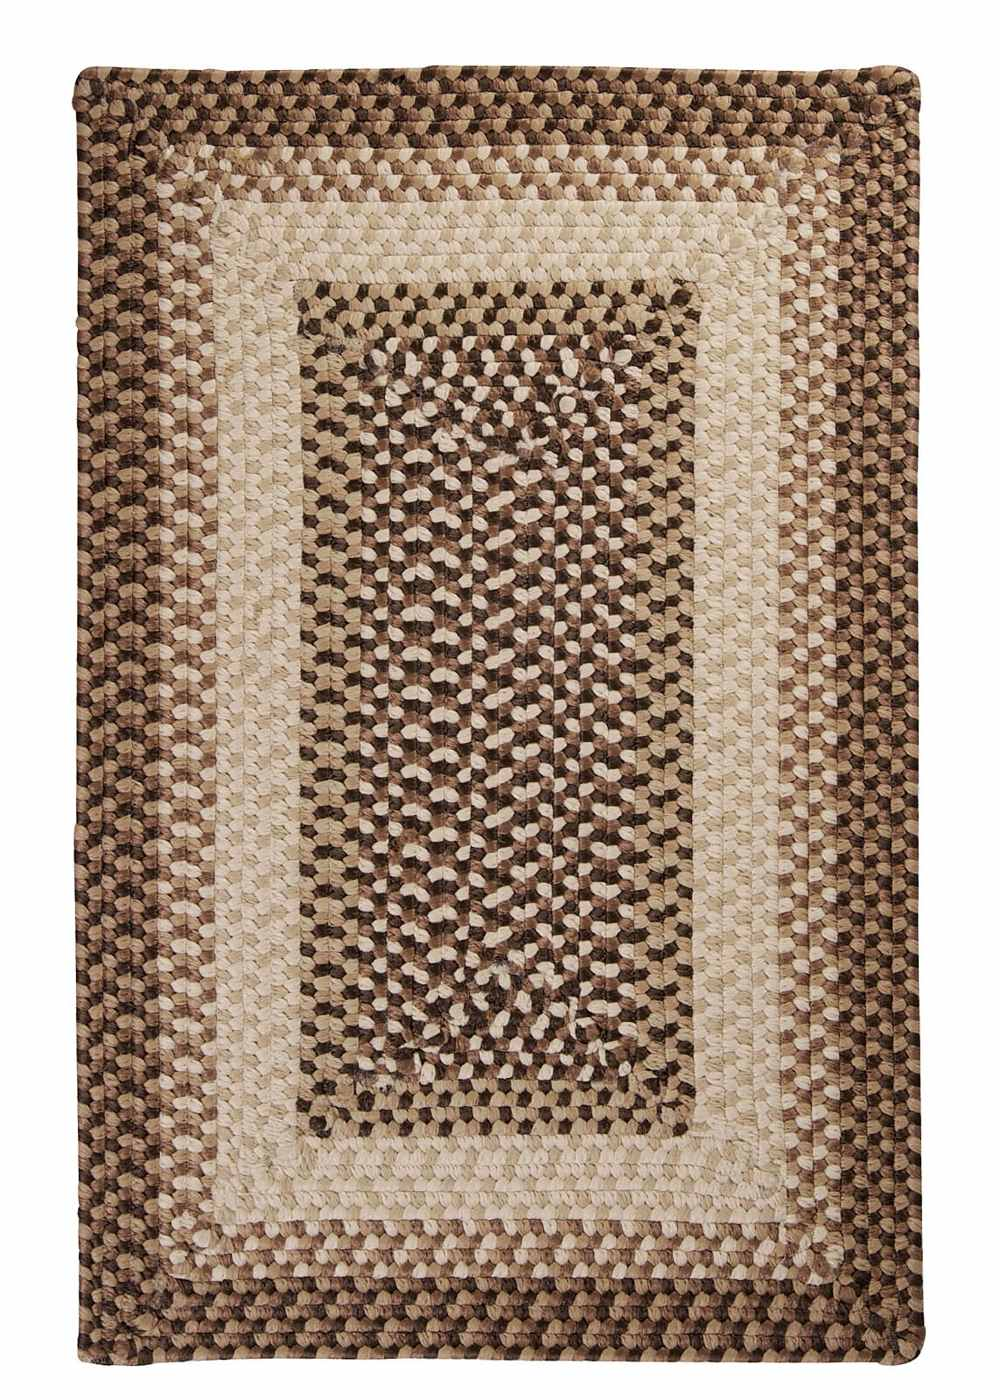 Super Area Rugs 2ft. x 6ft. Indoor/Outdoor Reversible Braided Rug Sandstorm Color (2x6) at Sears.com